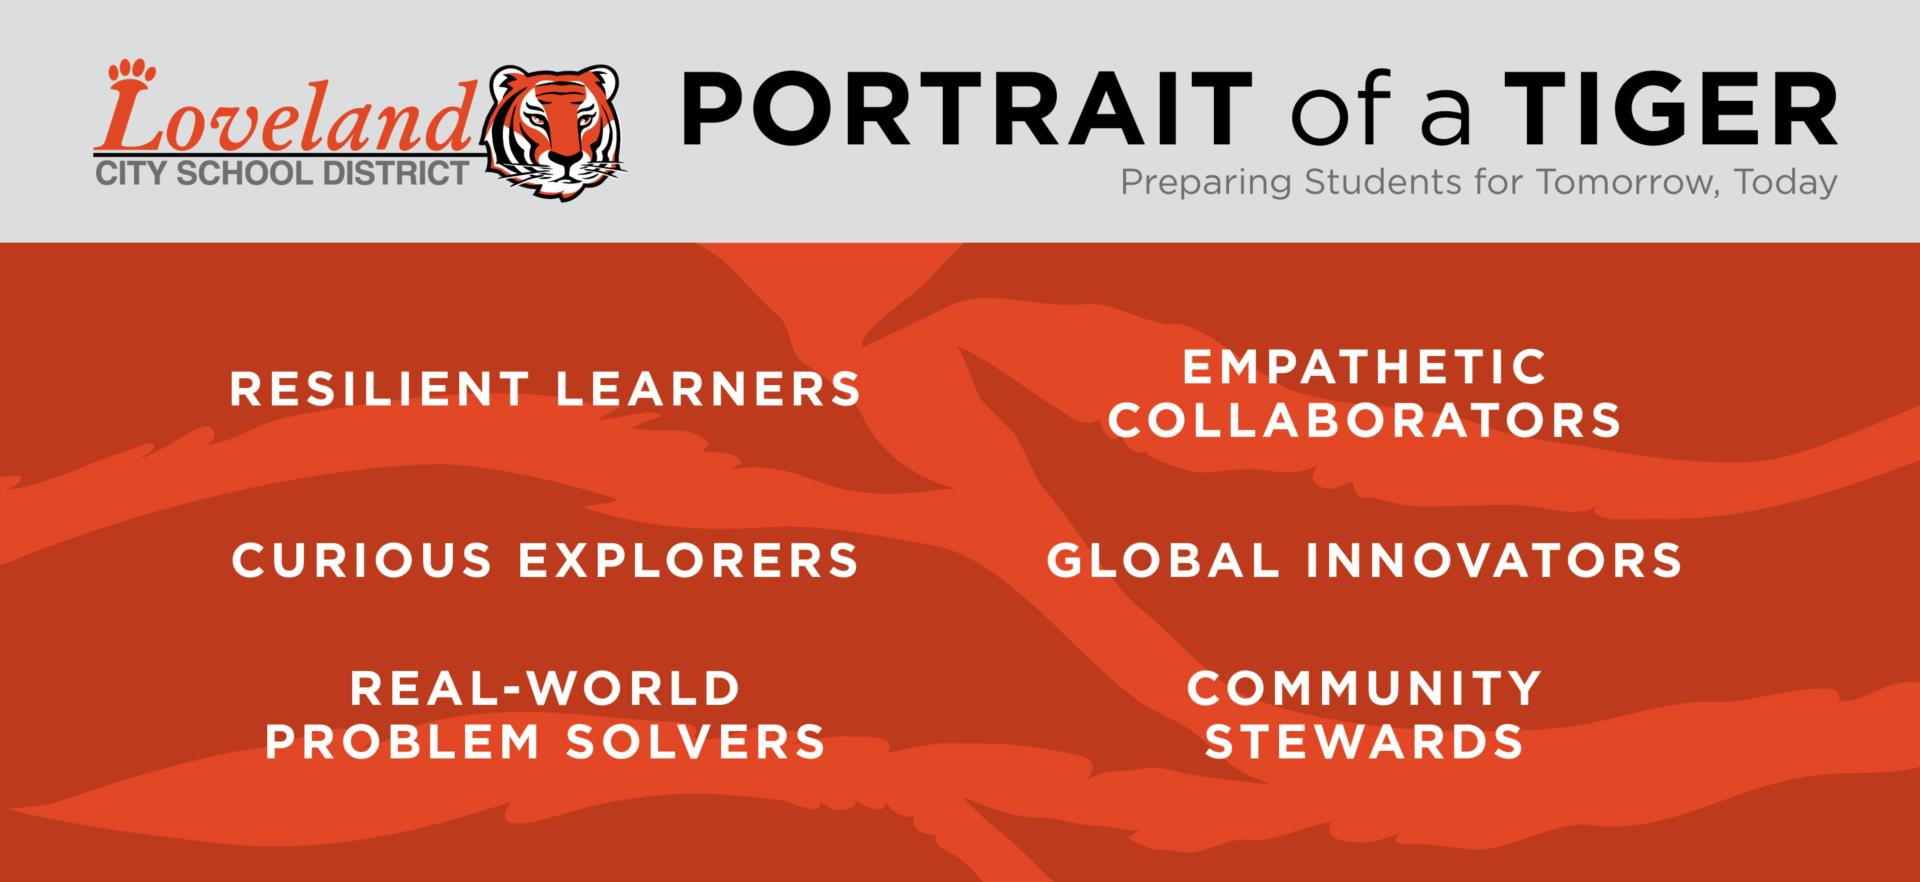 Portrait of a Tiger graphics